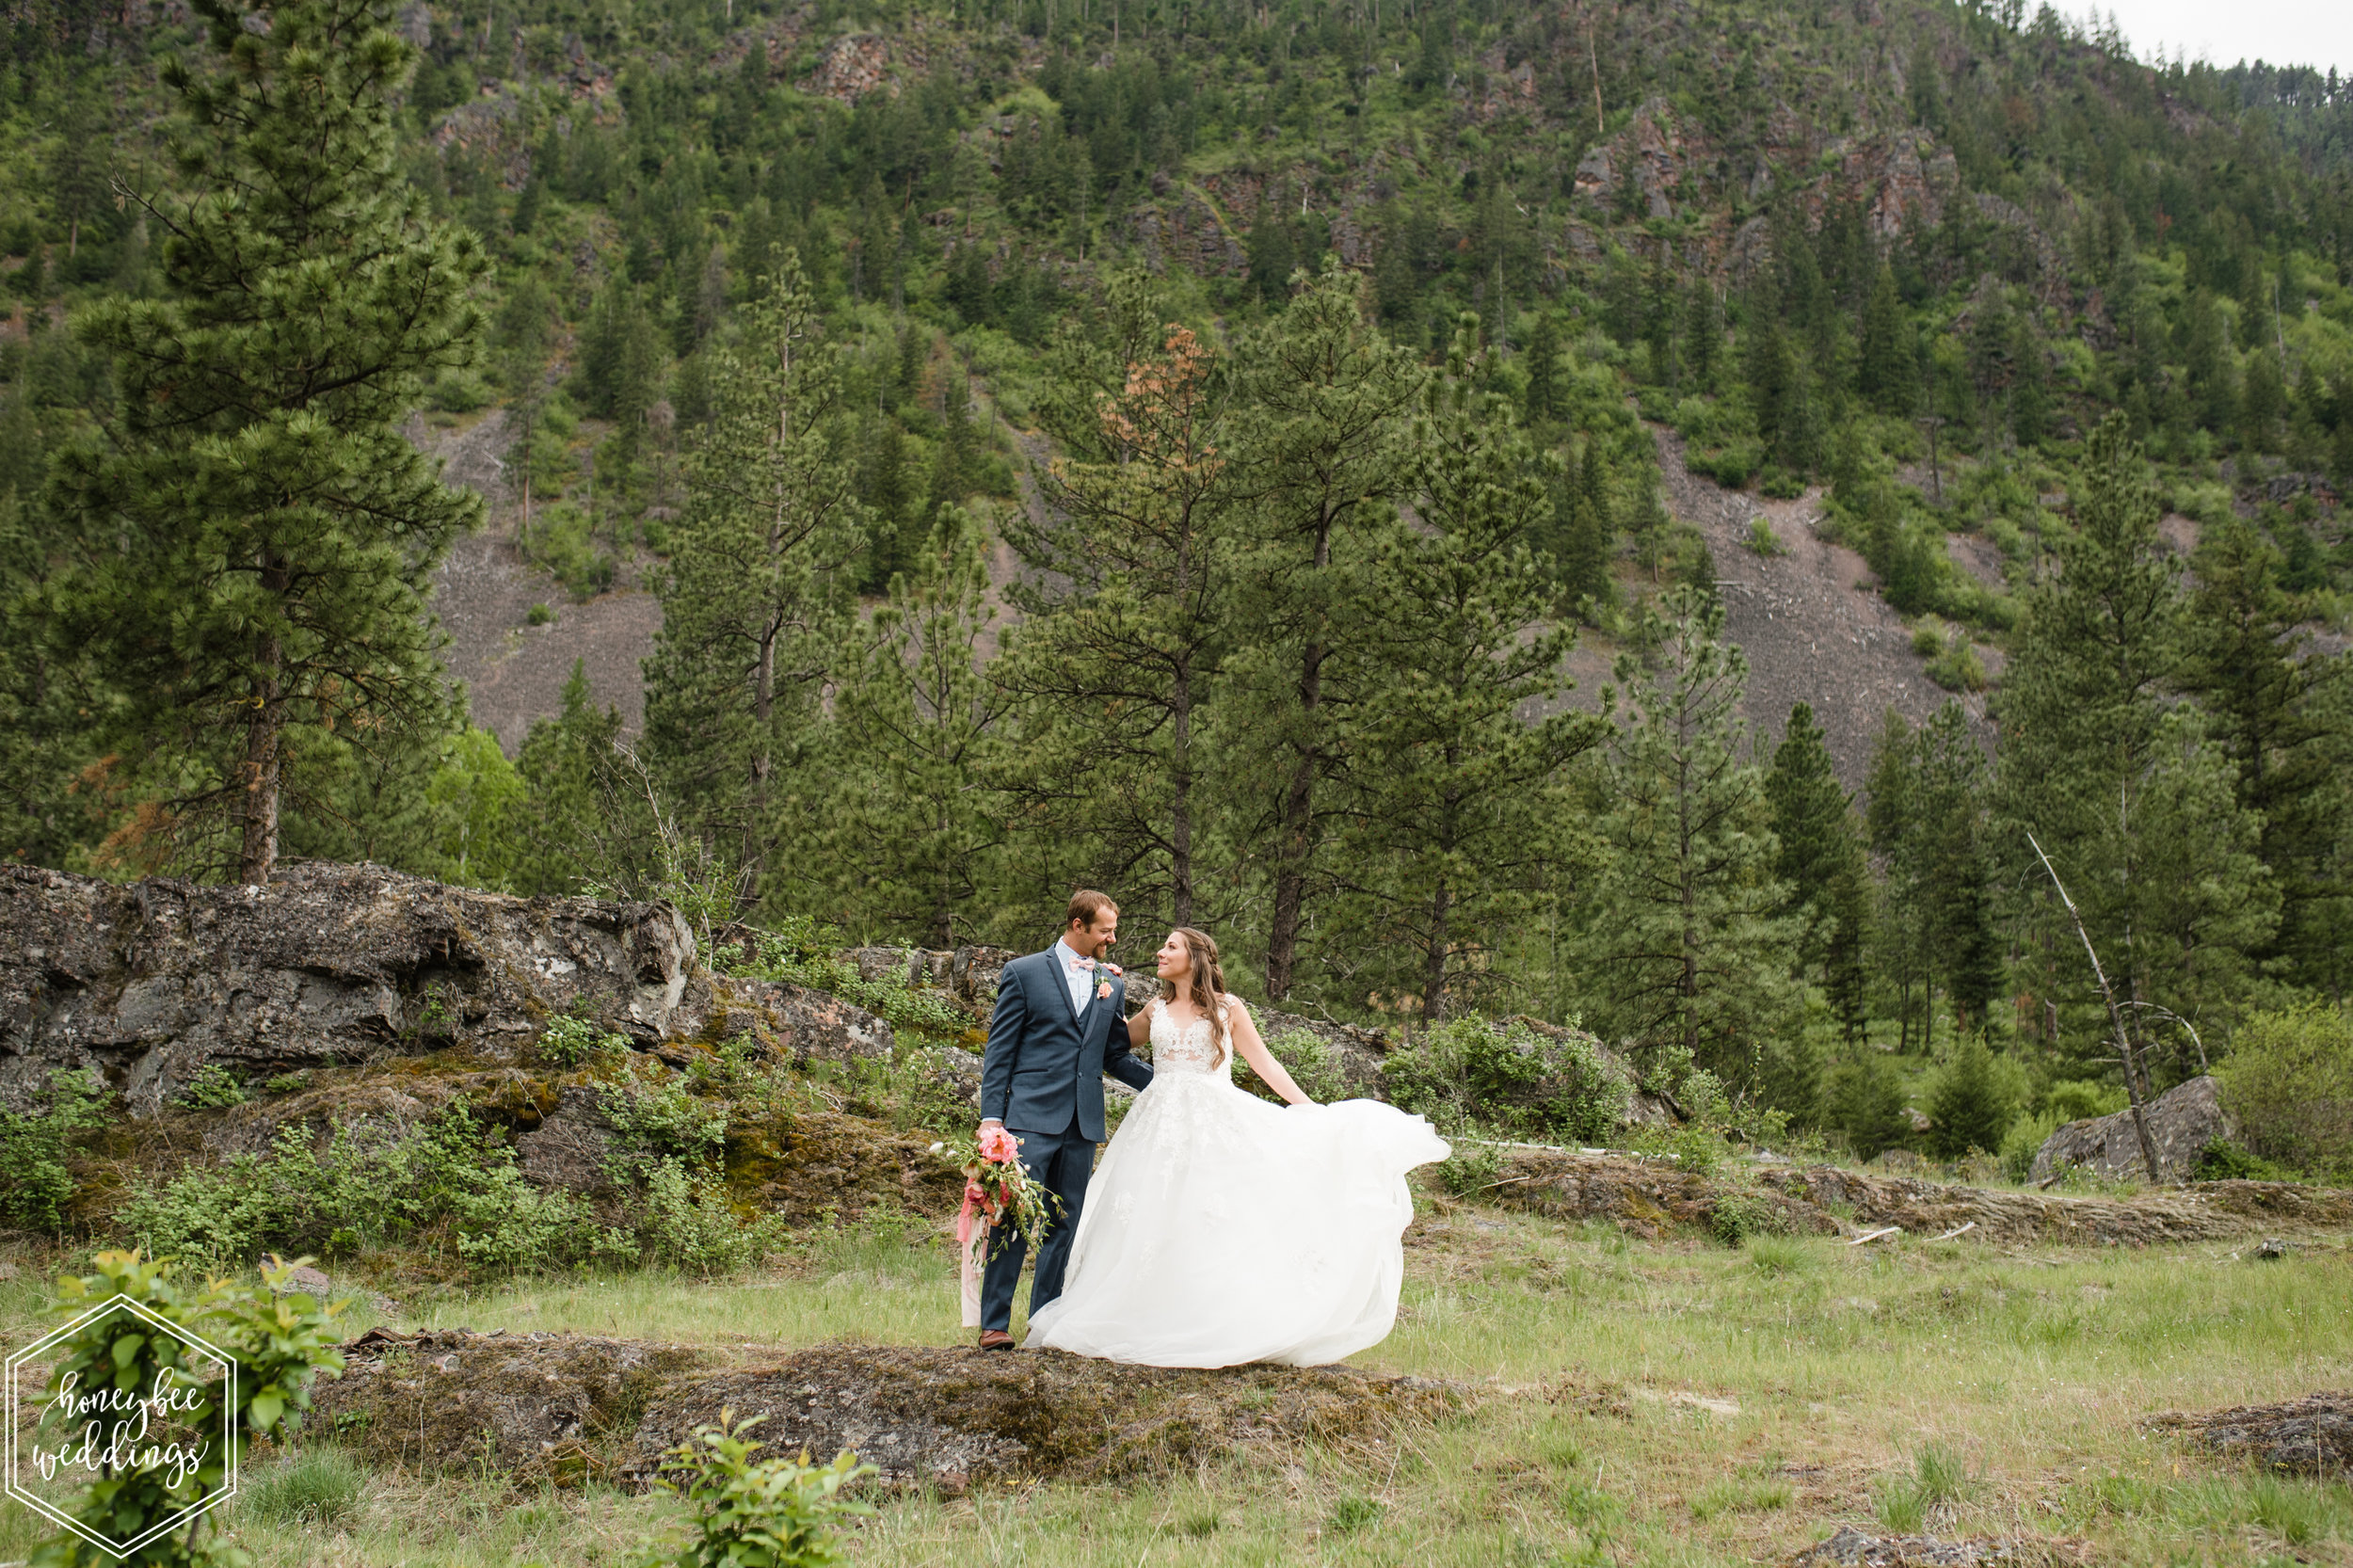 148Coral Mountain Wedding at White Raven_Honeybee Weddings_May 23, 2019-443.jpg